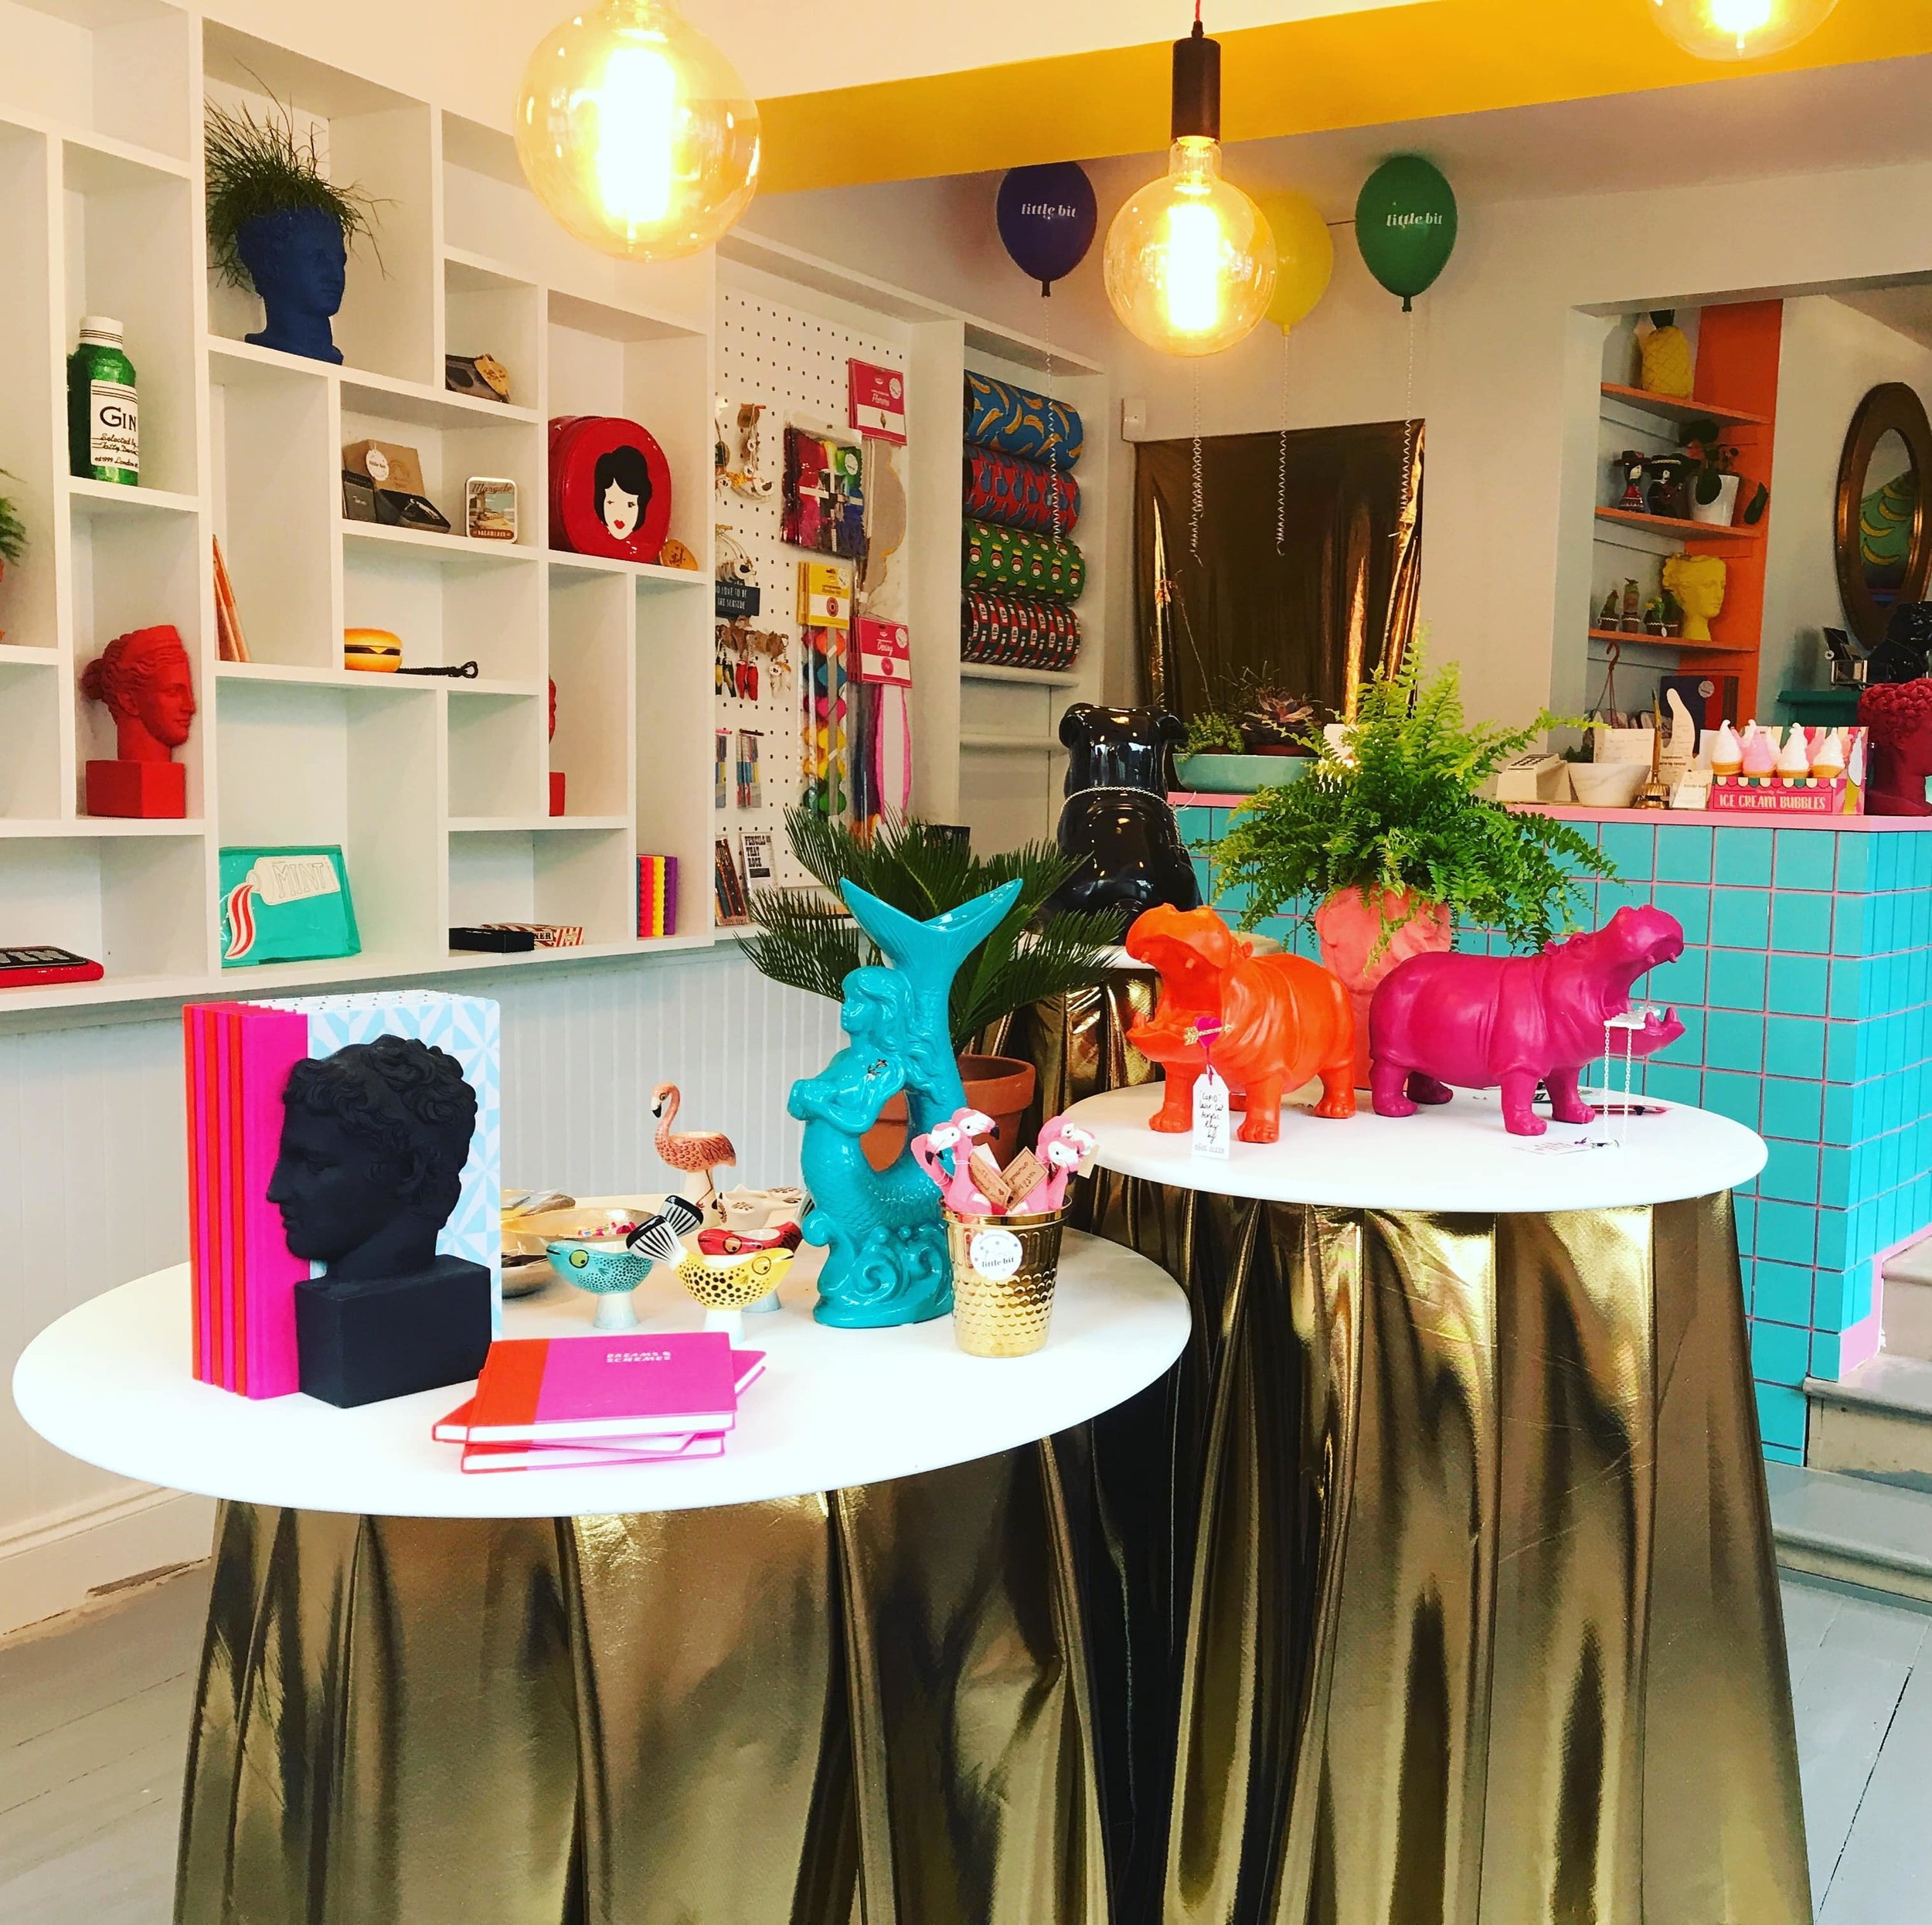 Little Bit   Interior Design for a shop whose brief is to spread joy. A complete refit created with fun in mind.